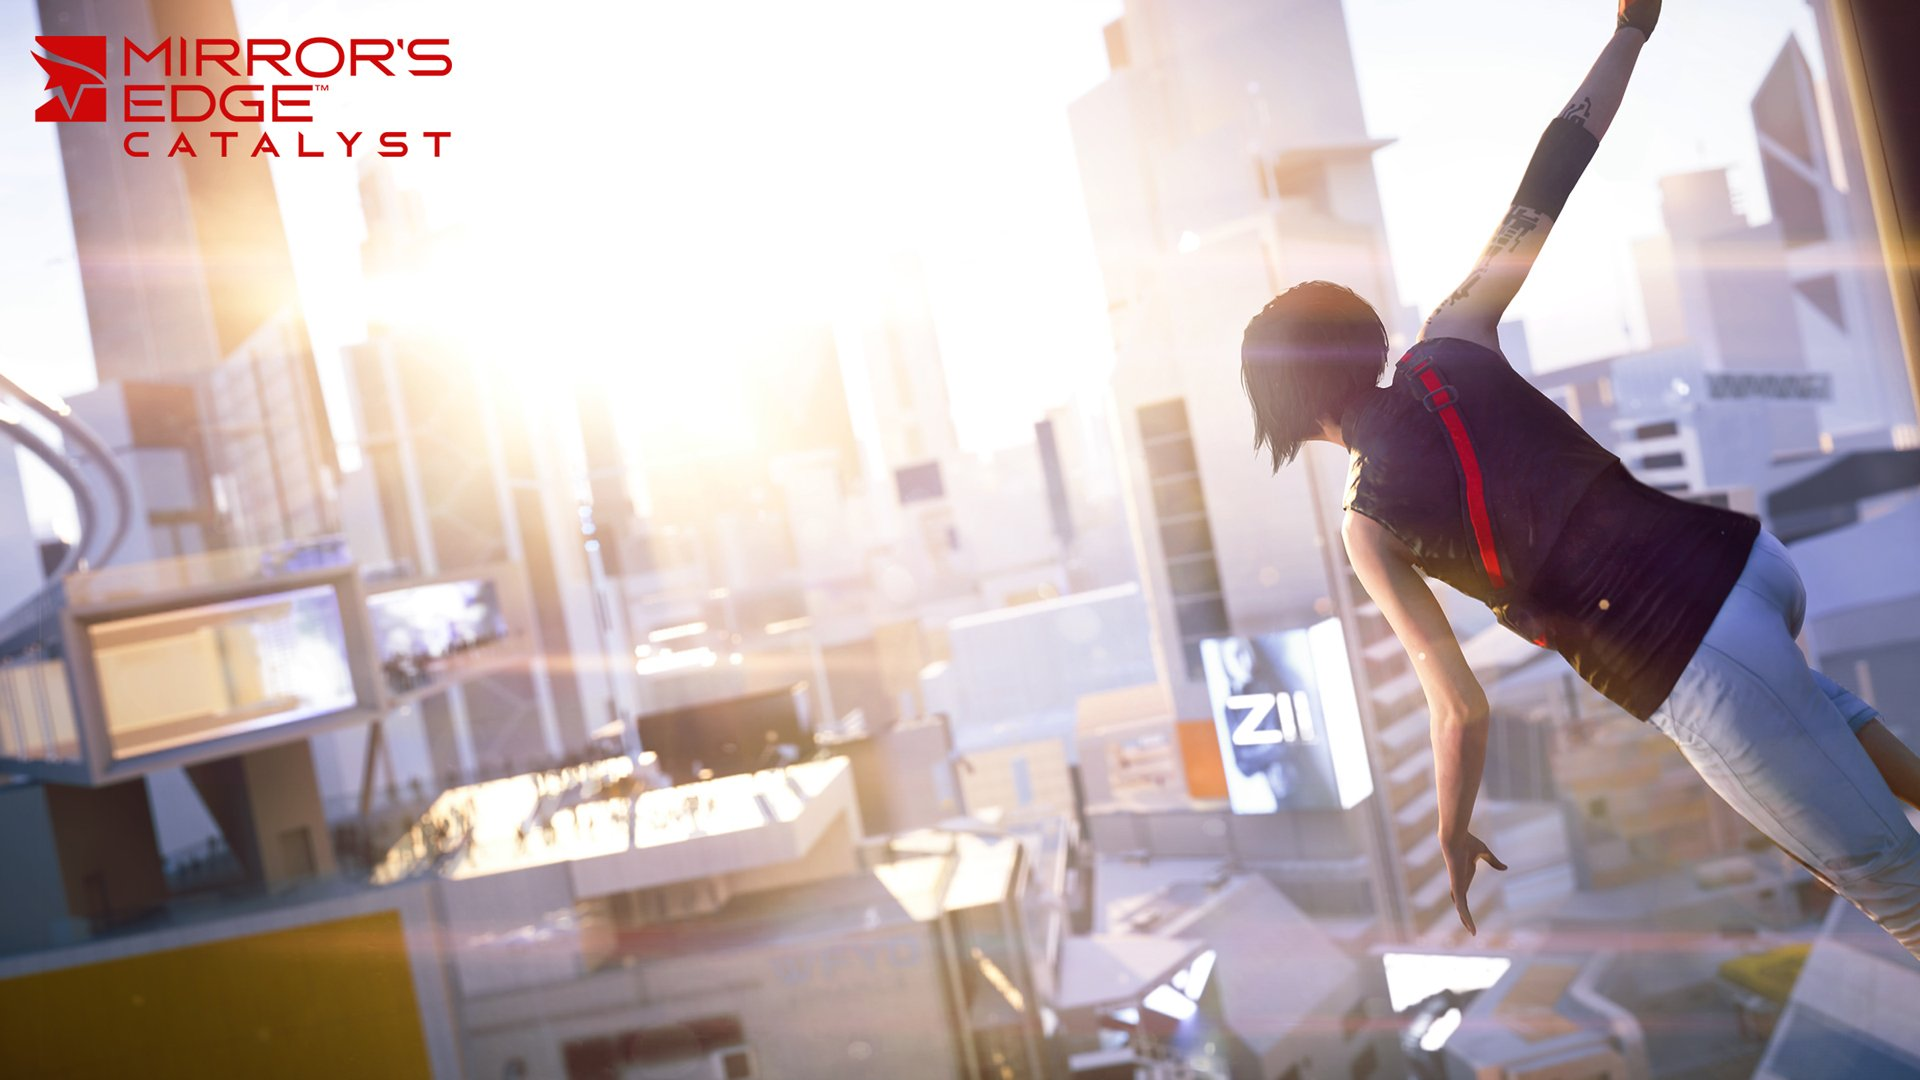 mirrors edge catalyst video game wallpaper 48660